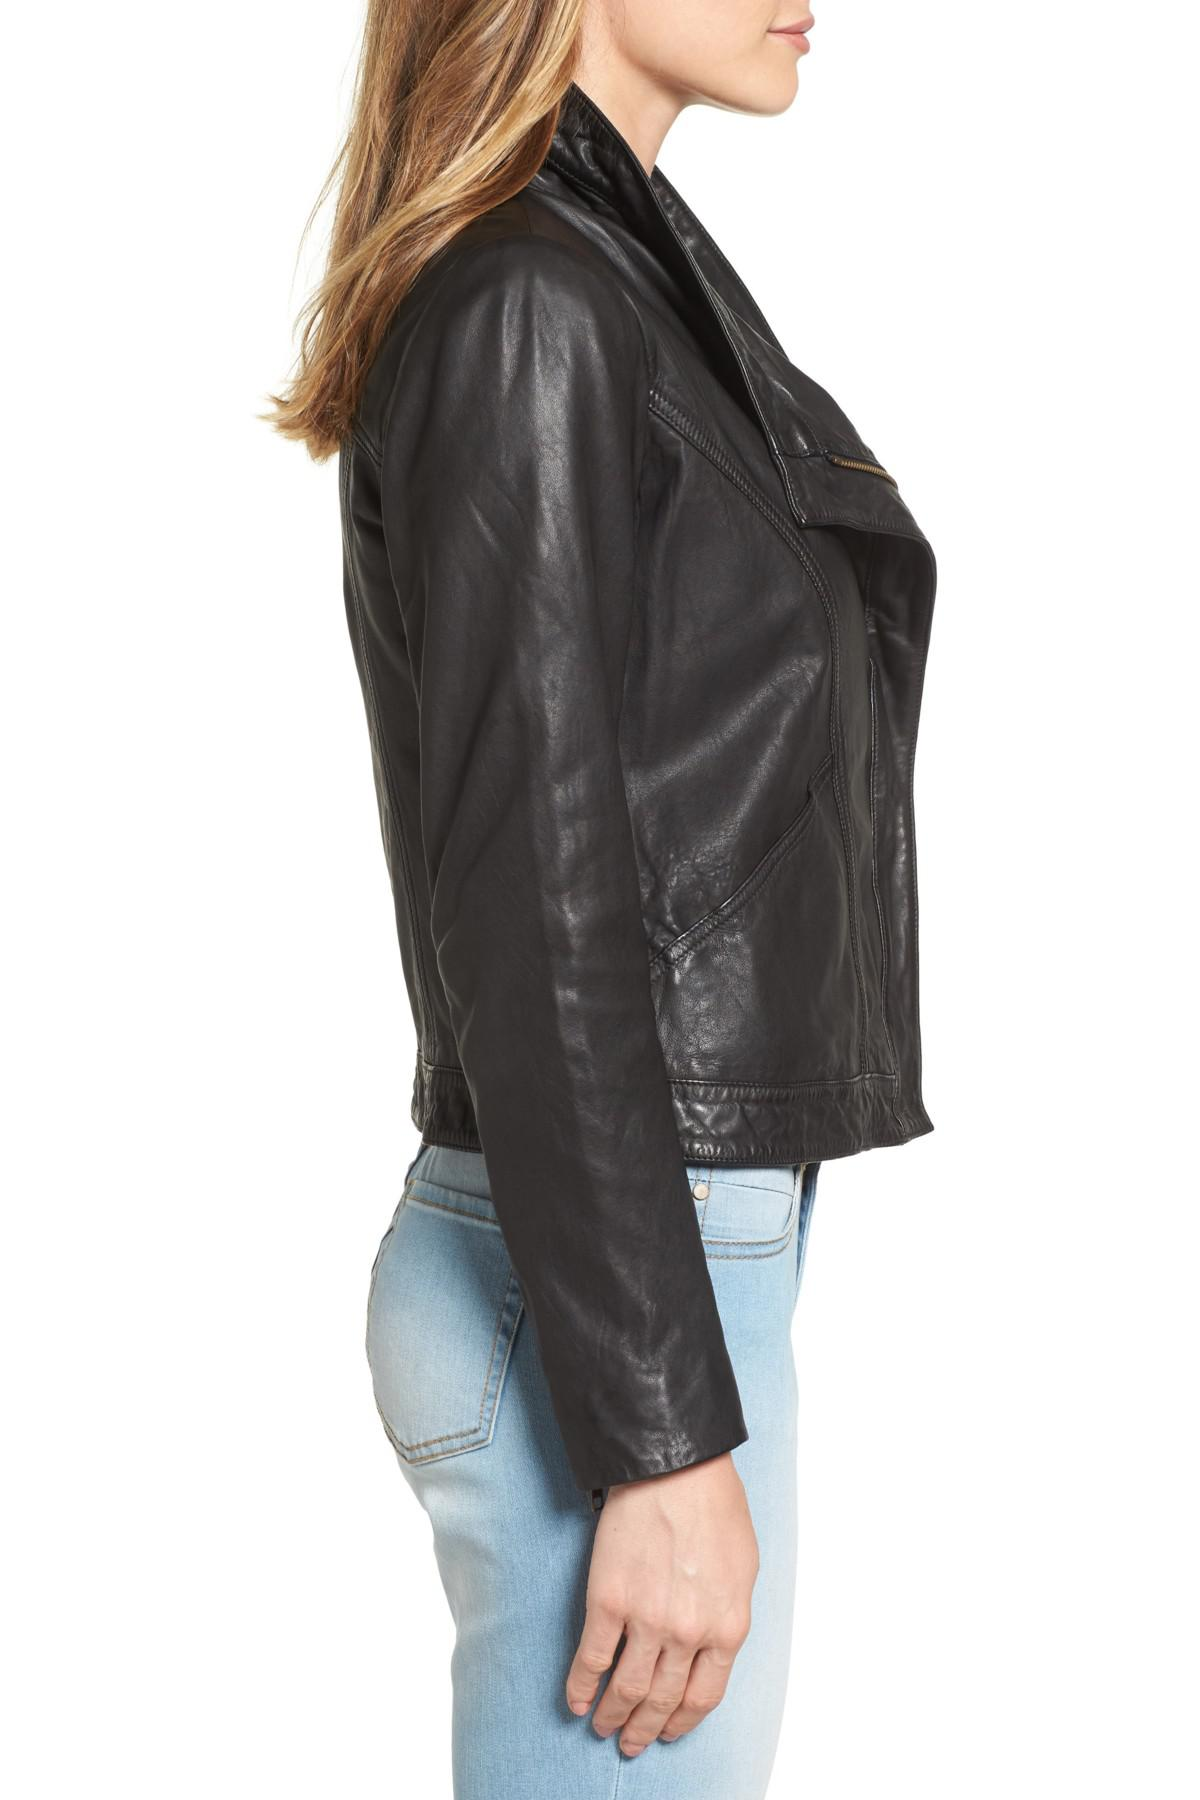 cccc9351aaa15 Lyst - Caslon (r) Leather Jacket (regular   Petite) in Black